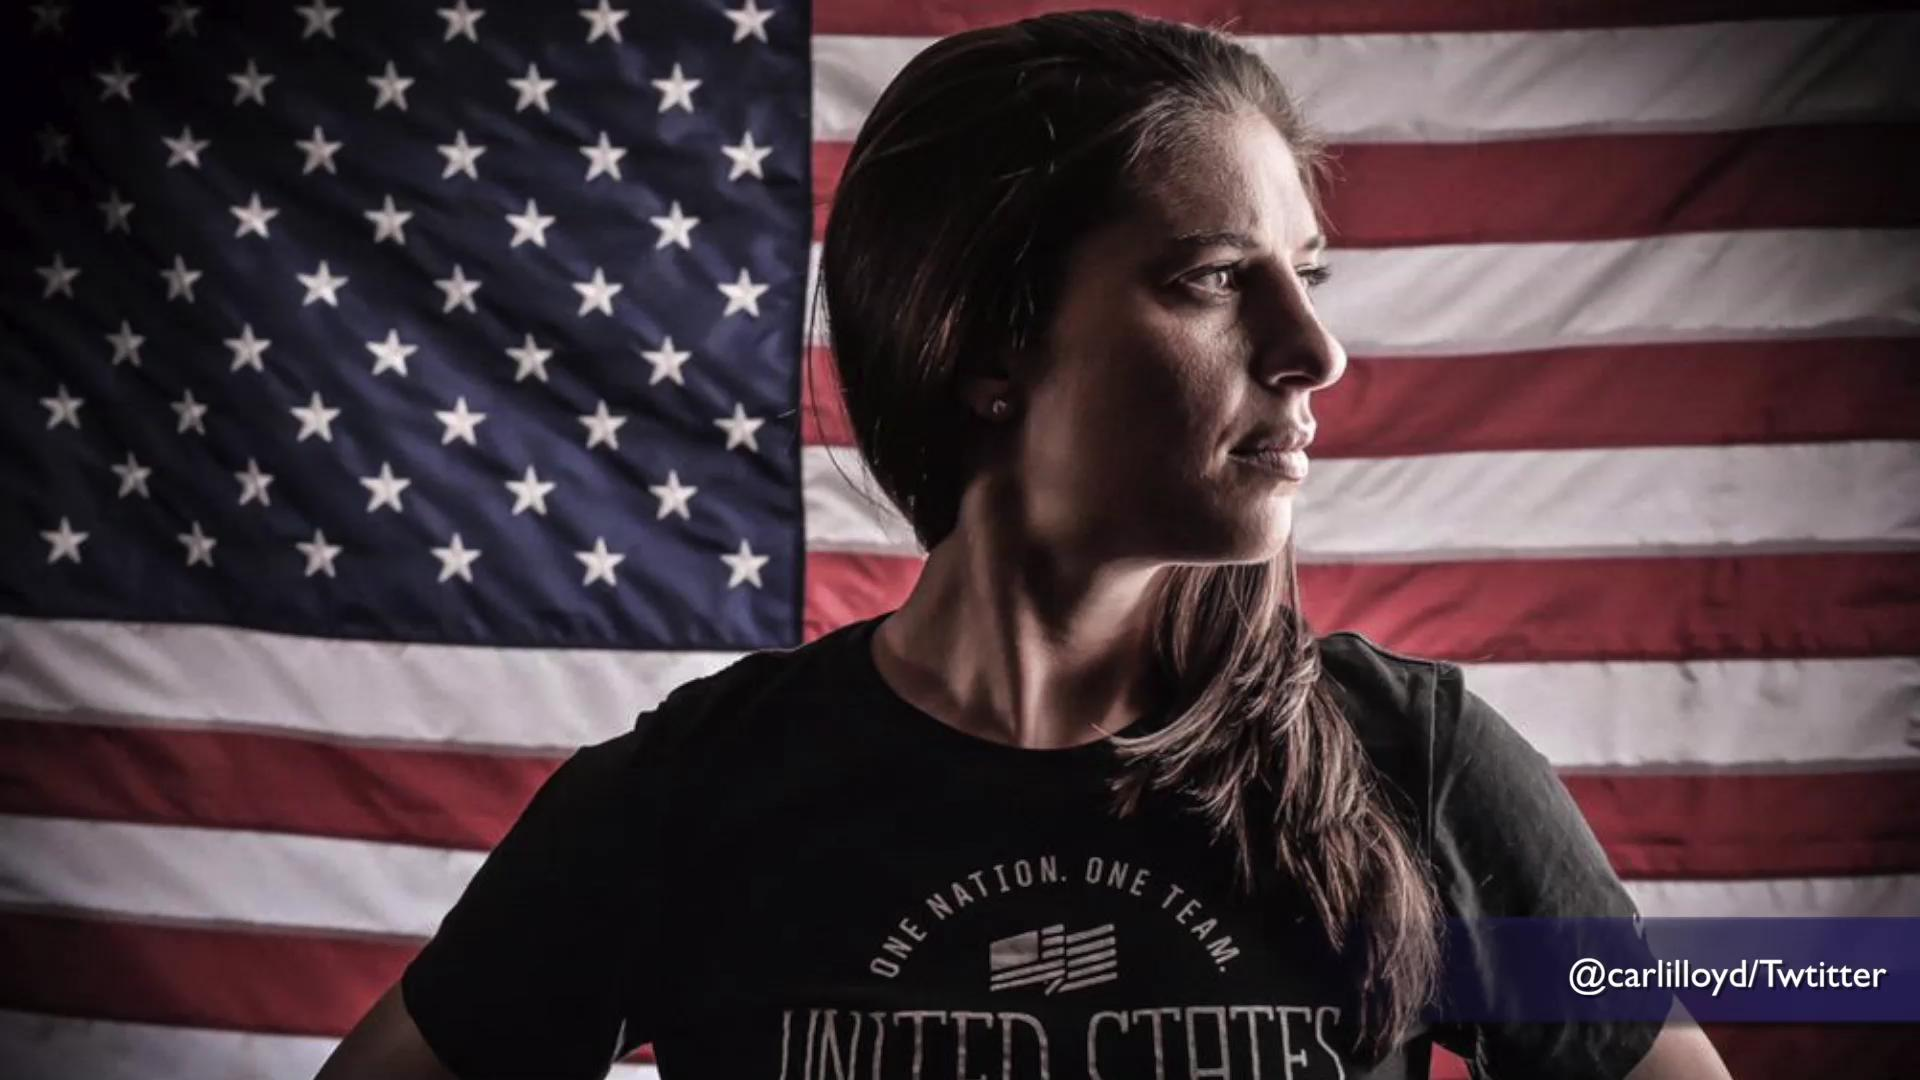 Twitter wants World Cup hero Carli Lloyd for President, $10 bill